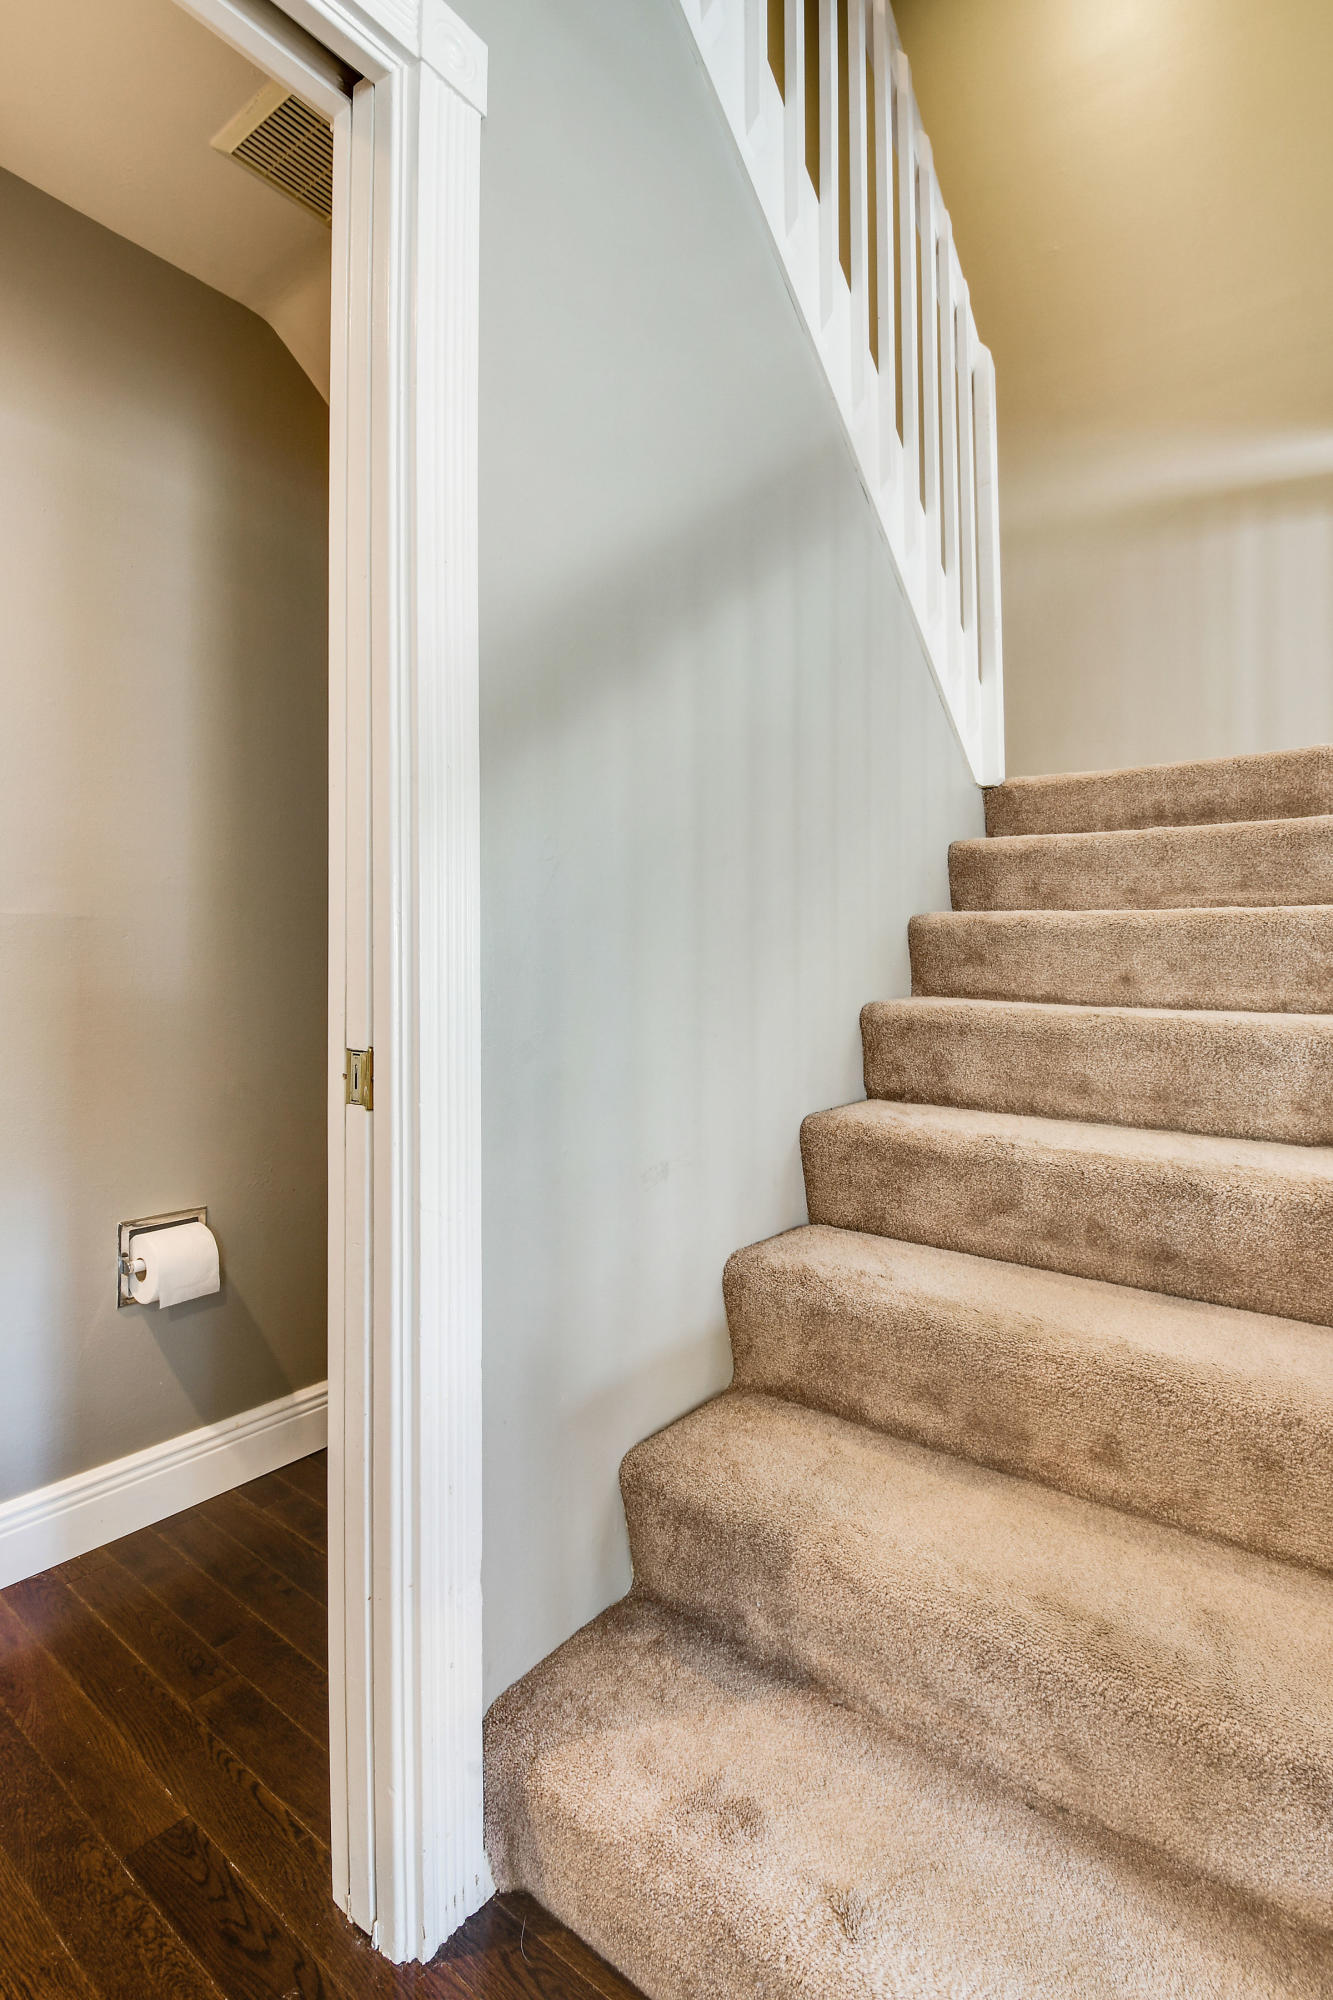 146 Day Lily Drive  - Abacoa Homes - photo 17